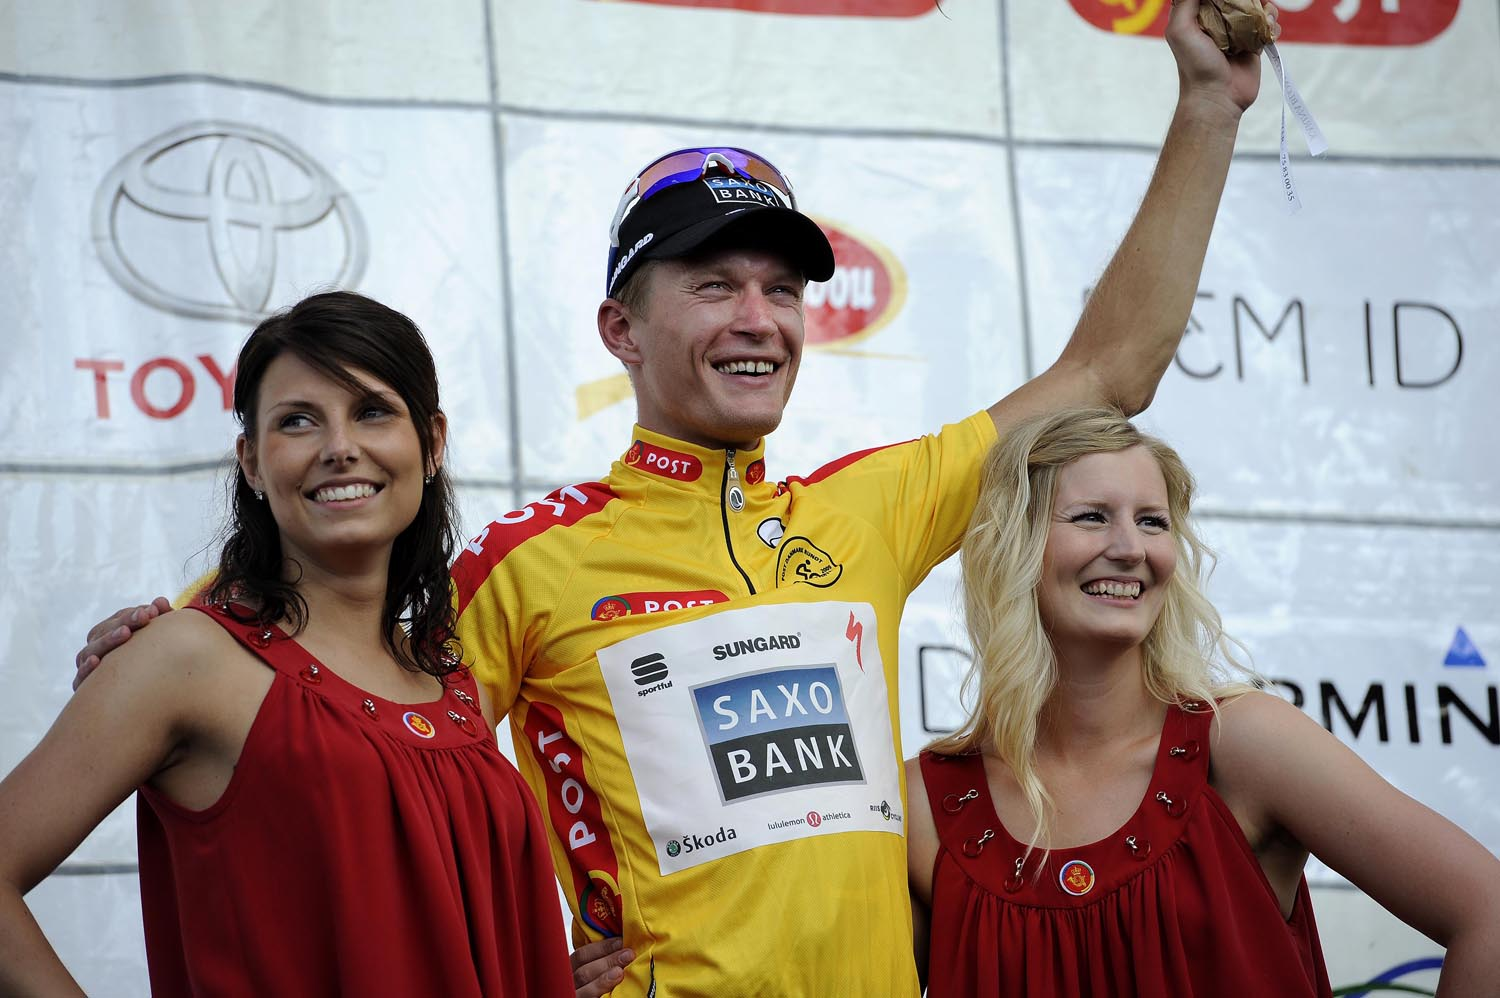 Matti Breschel leads, Tour of Denmark 2010, stage 3